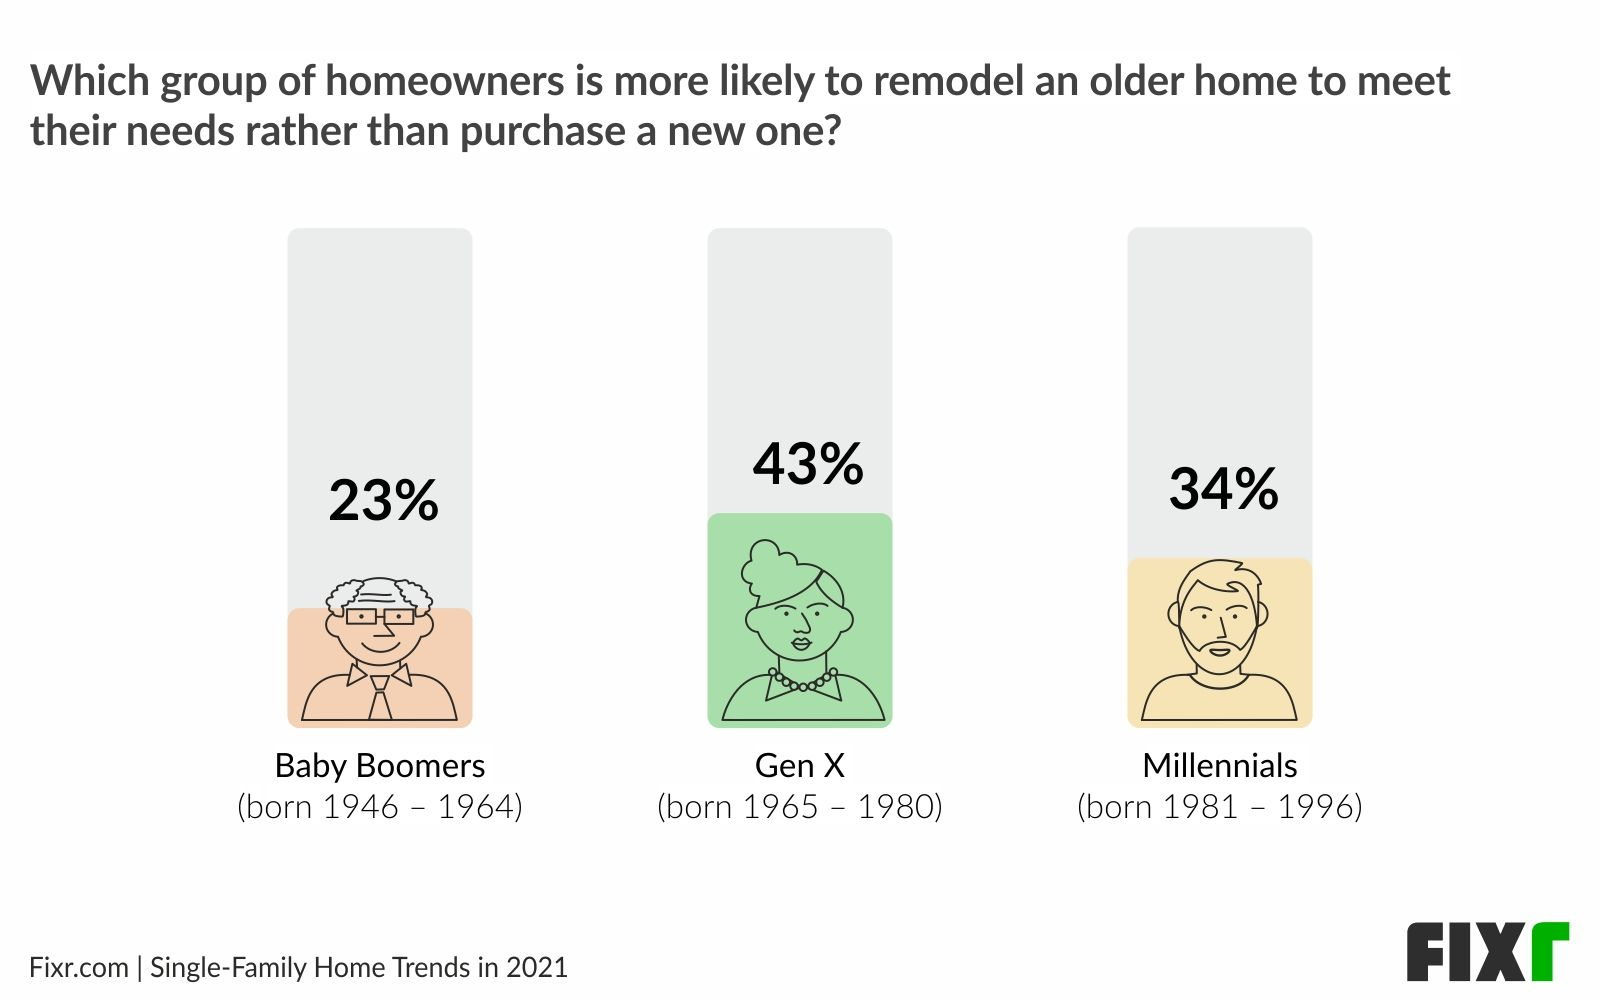 Home remodeling trends 2021 - Remodel vs buying a new home